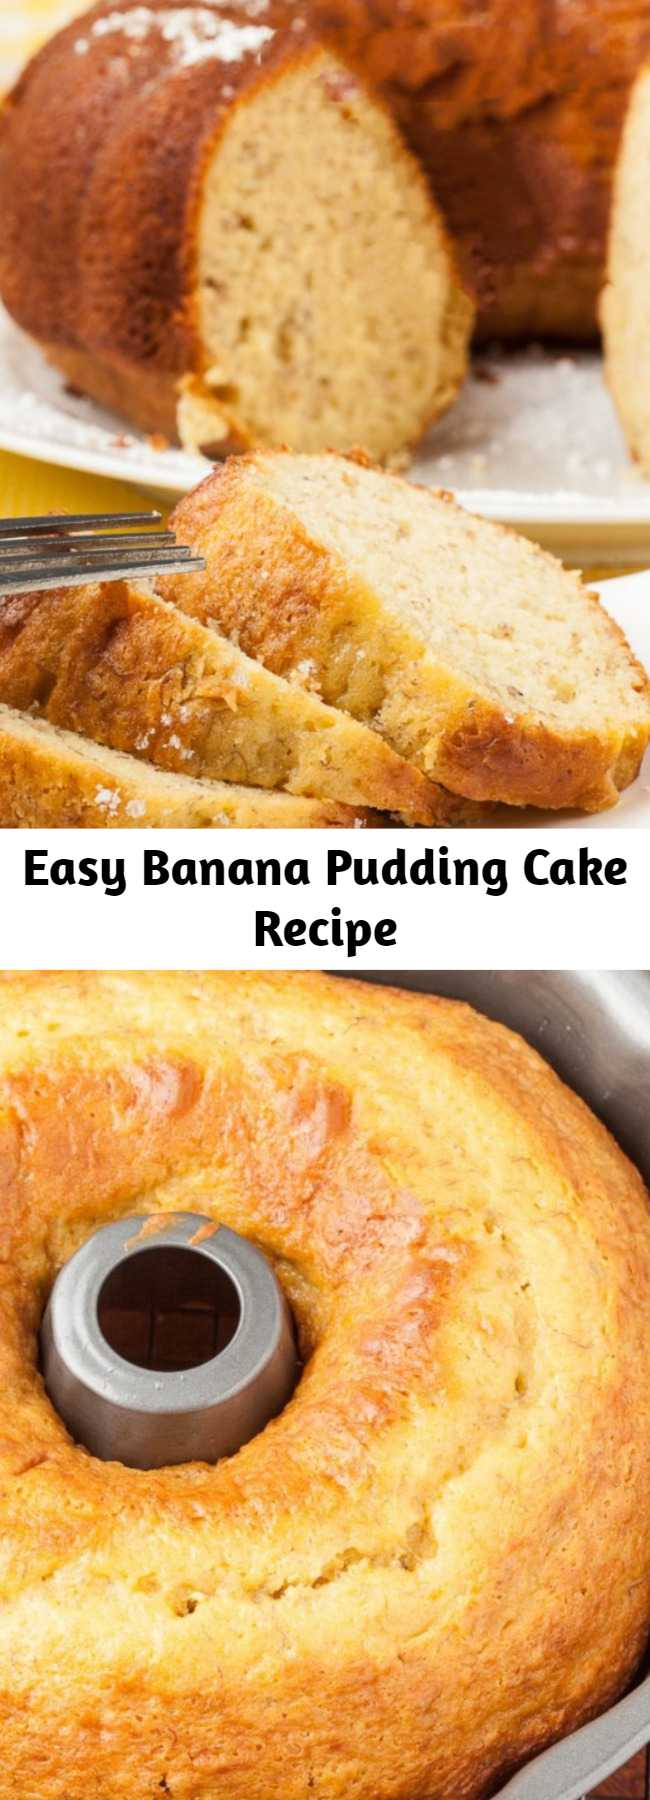 Easy Banana Pudding Cake Recipe - This Banana Pudding Cake is dreamy and luscious! It's extremely moist, tender, and boasts huge banana flavor. This cake is perfect for brunch and dessert alike. It's delish without any icing, but feel free to add your own if you wish!